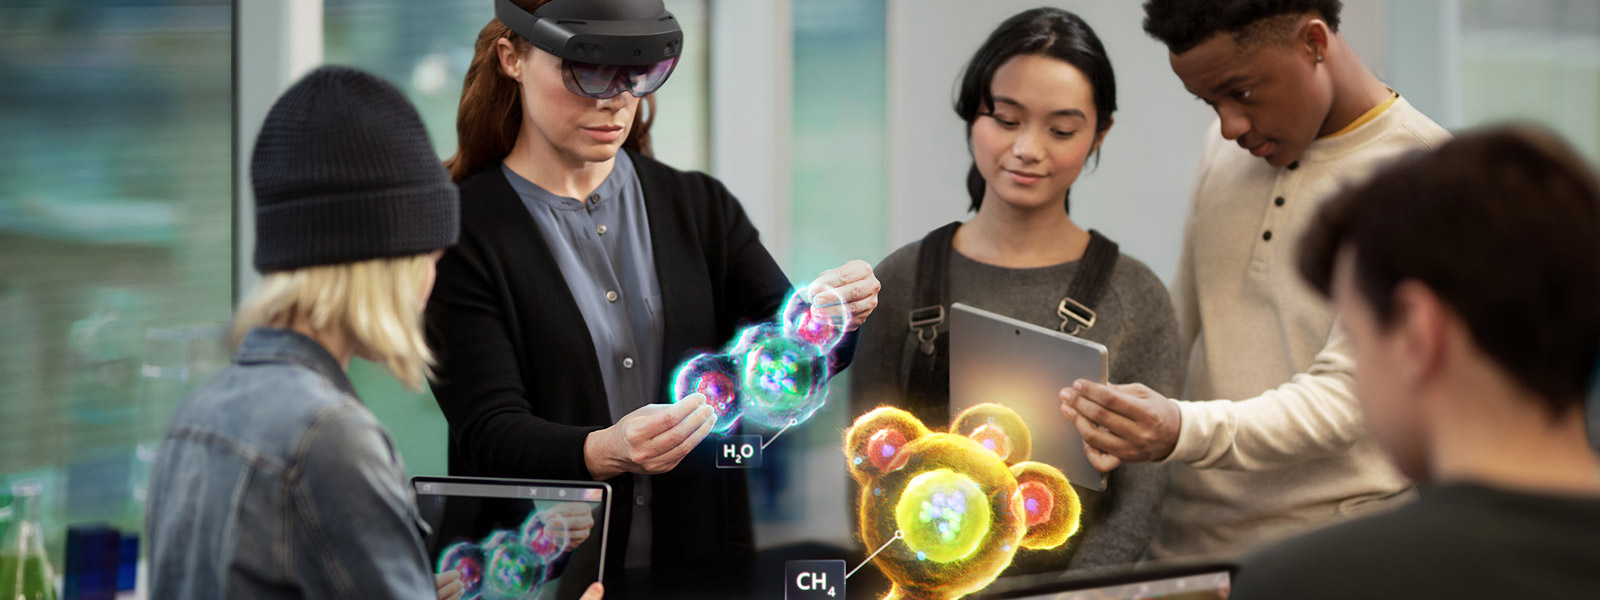 HoloLens-for-education